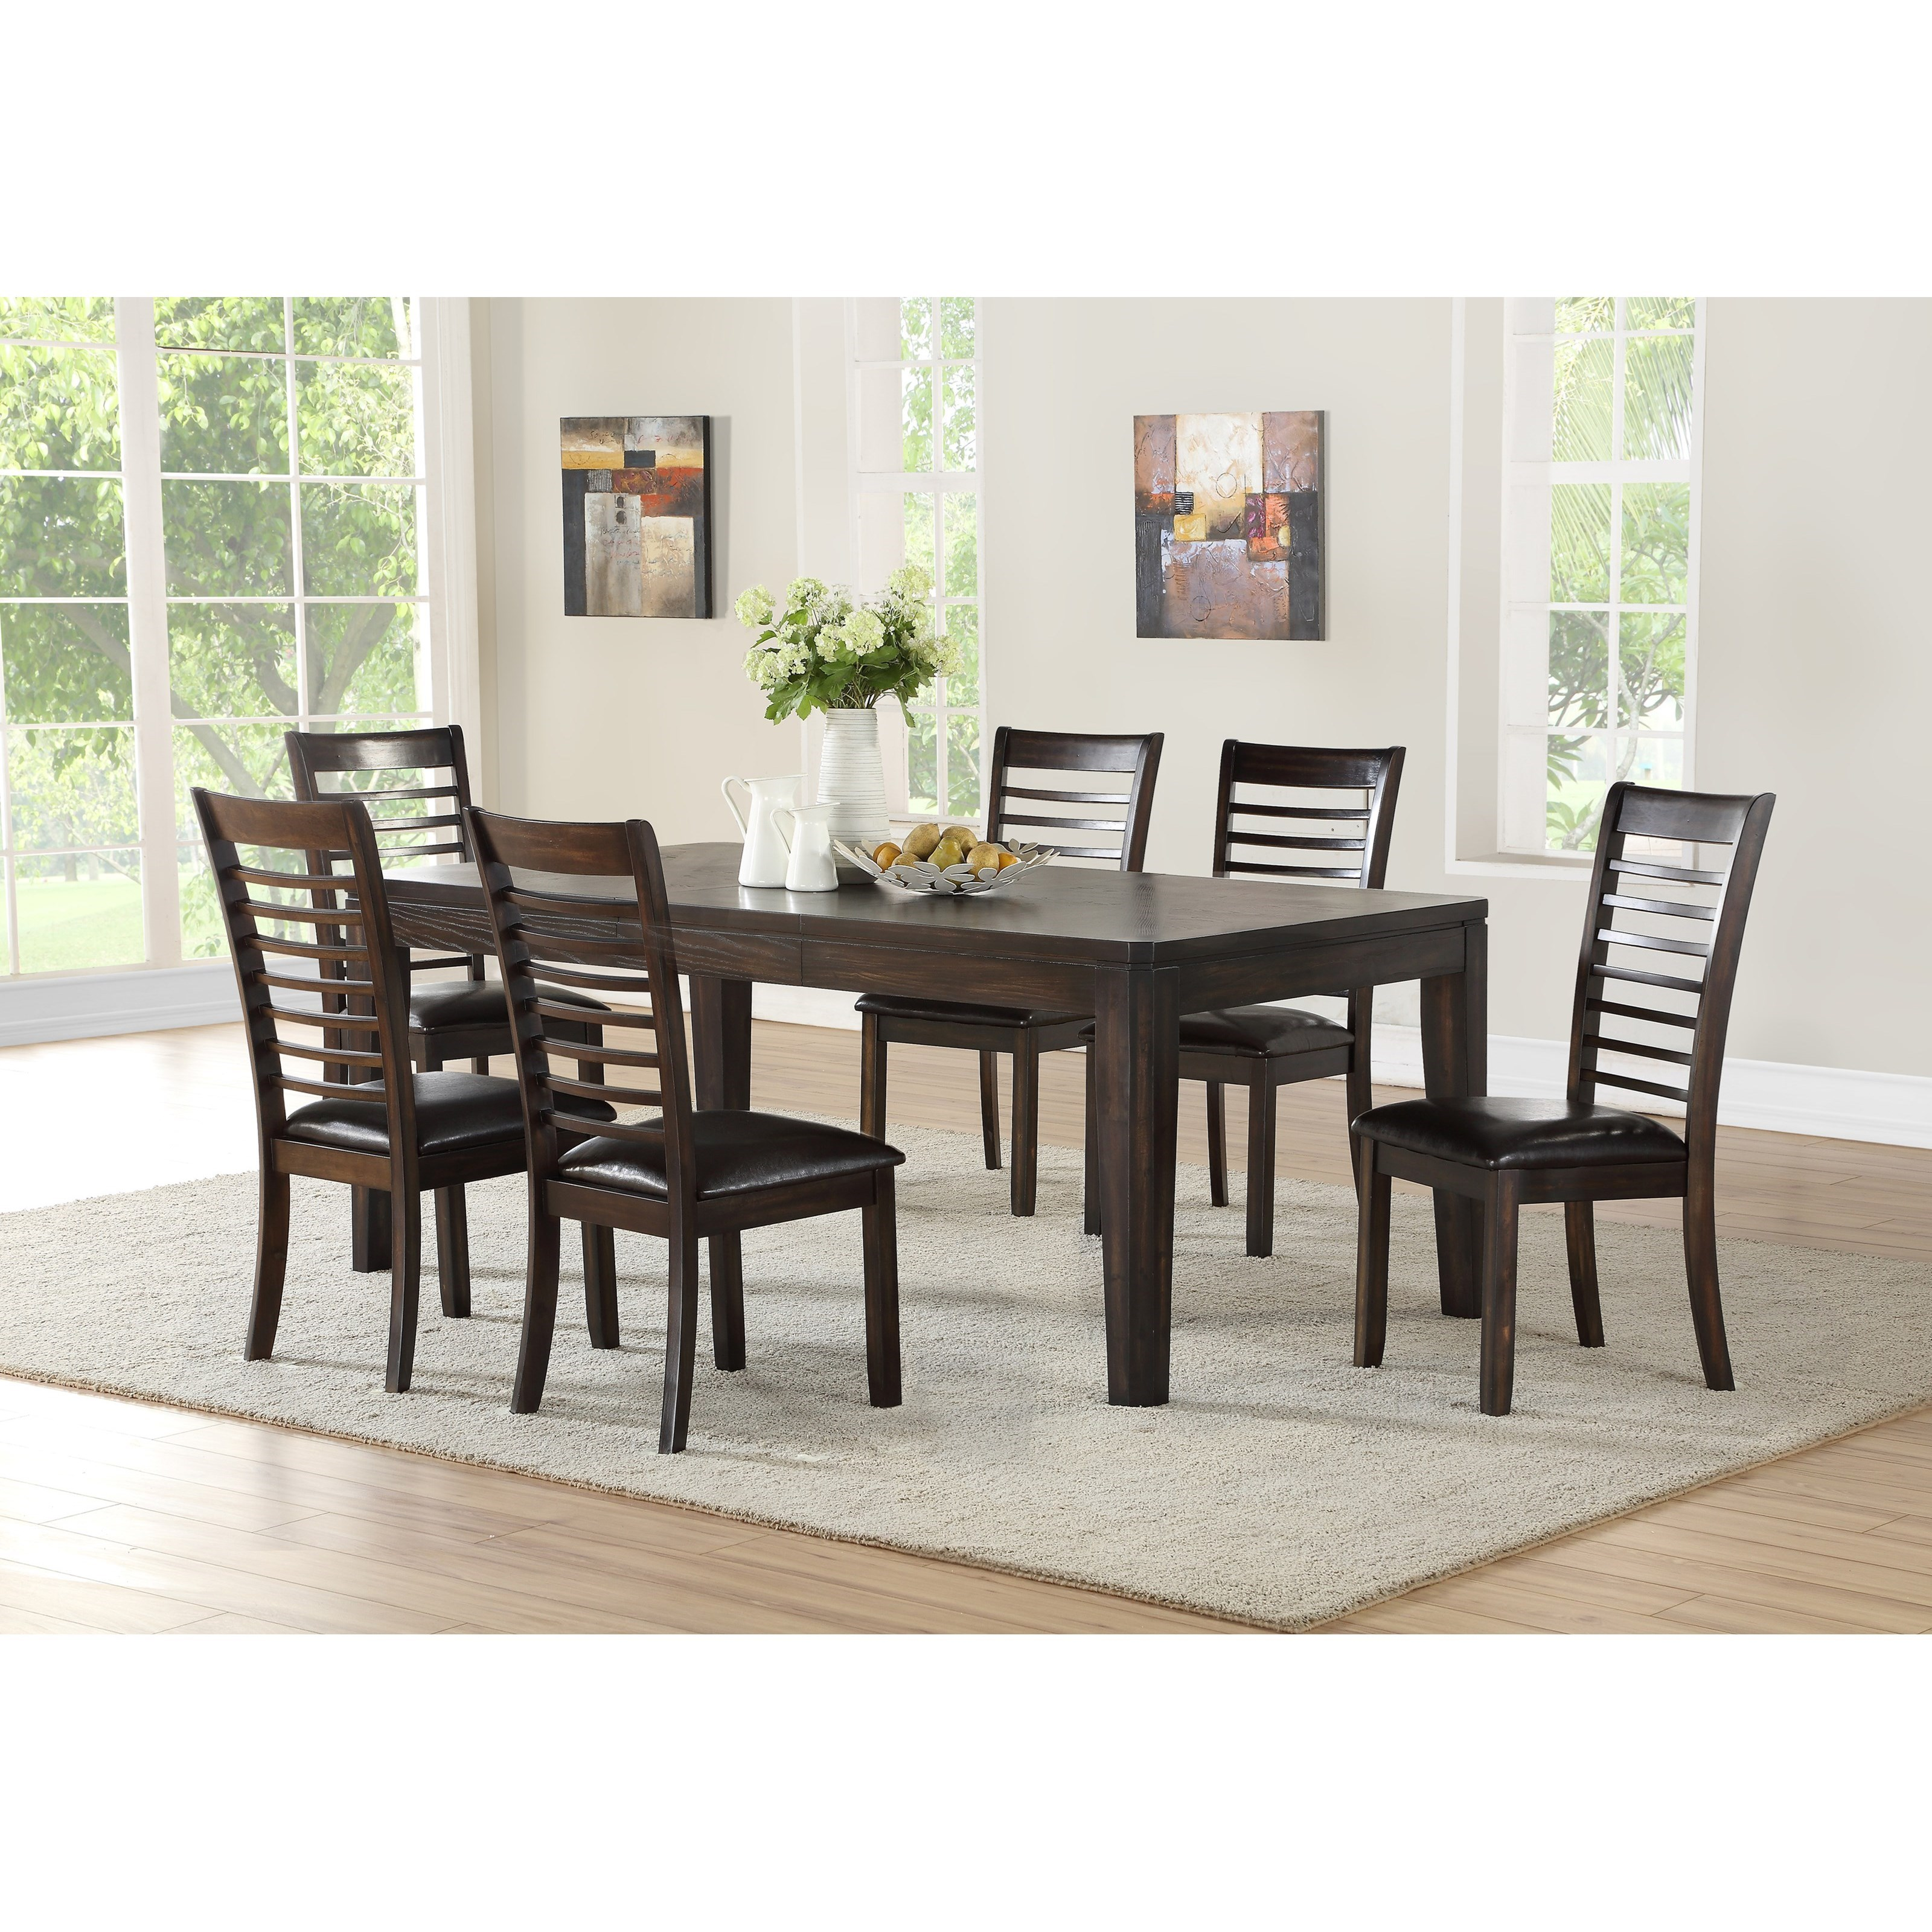 Dining Room Upholstered Chairs Ally Casual 7 Piece Table And Upholstered Chair Set By Steve Silver At Vandrie Home Furnishings